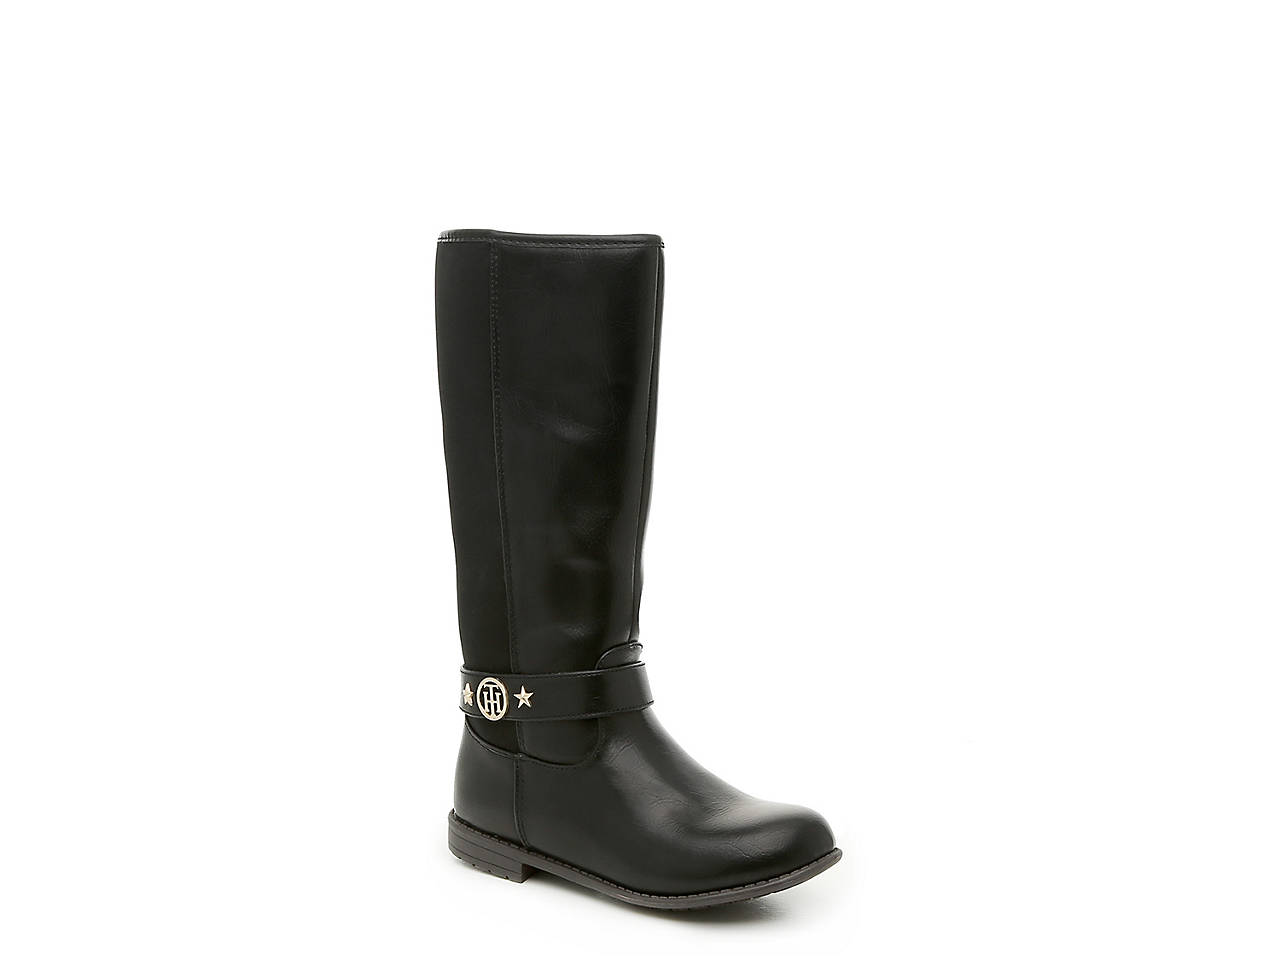 04c9755f5 Tommy Hilfiger Andrea Toddler & Youth Riding Boot Kids Shoes | DSW